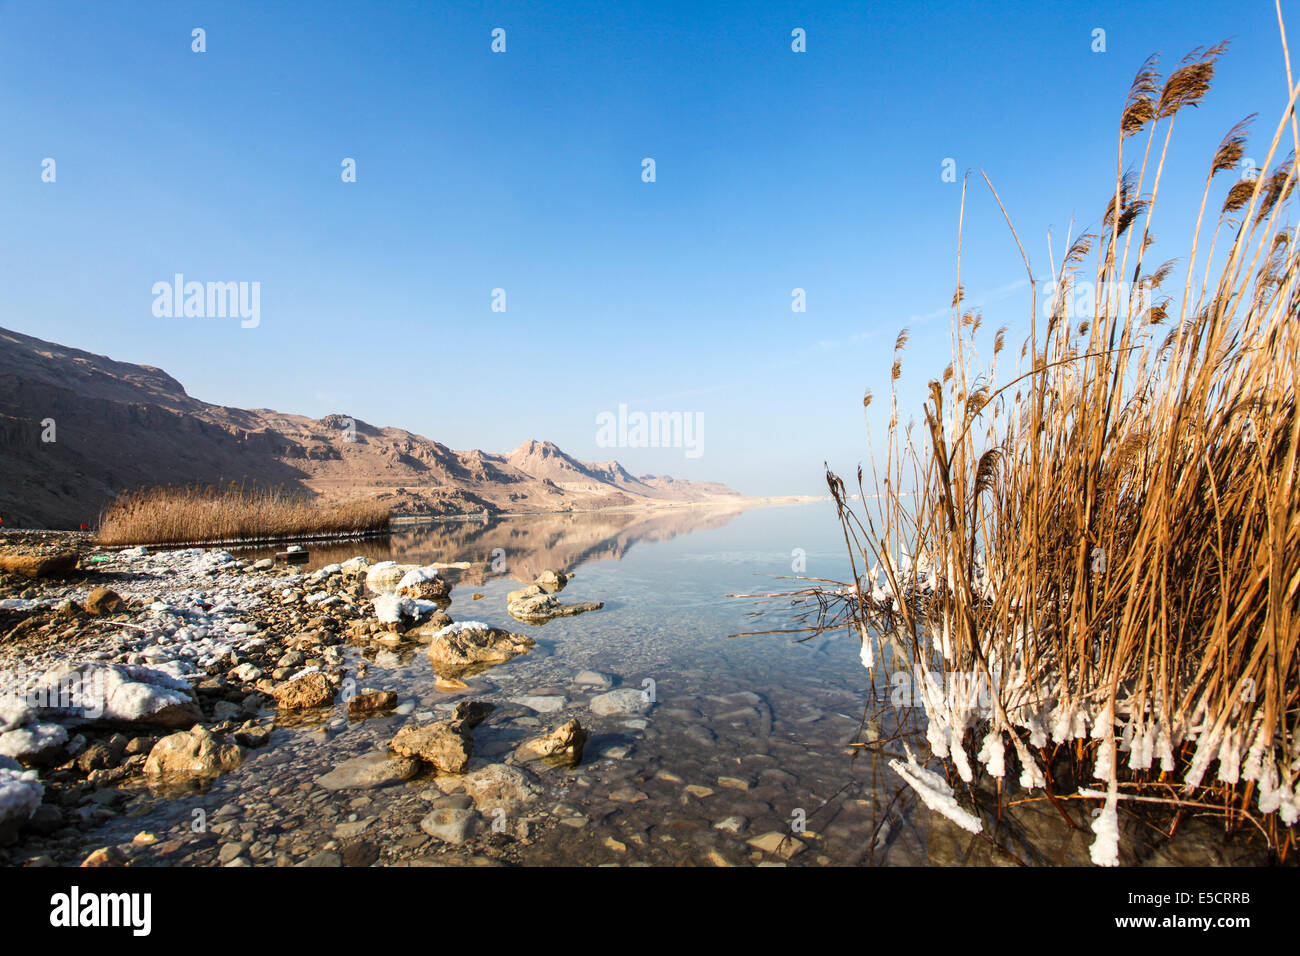 Israel, Dead Sea, salt crystalization caused by water evaporation - Stock Image